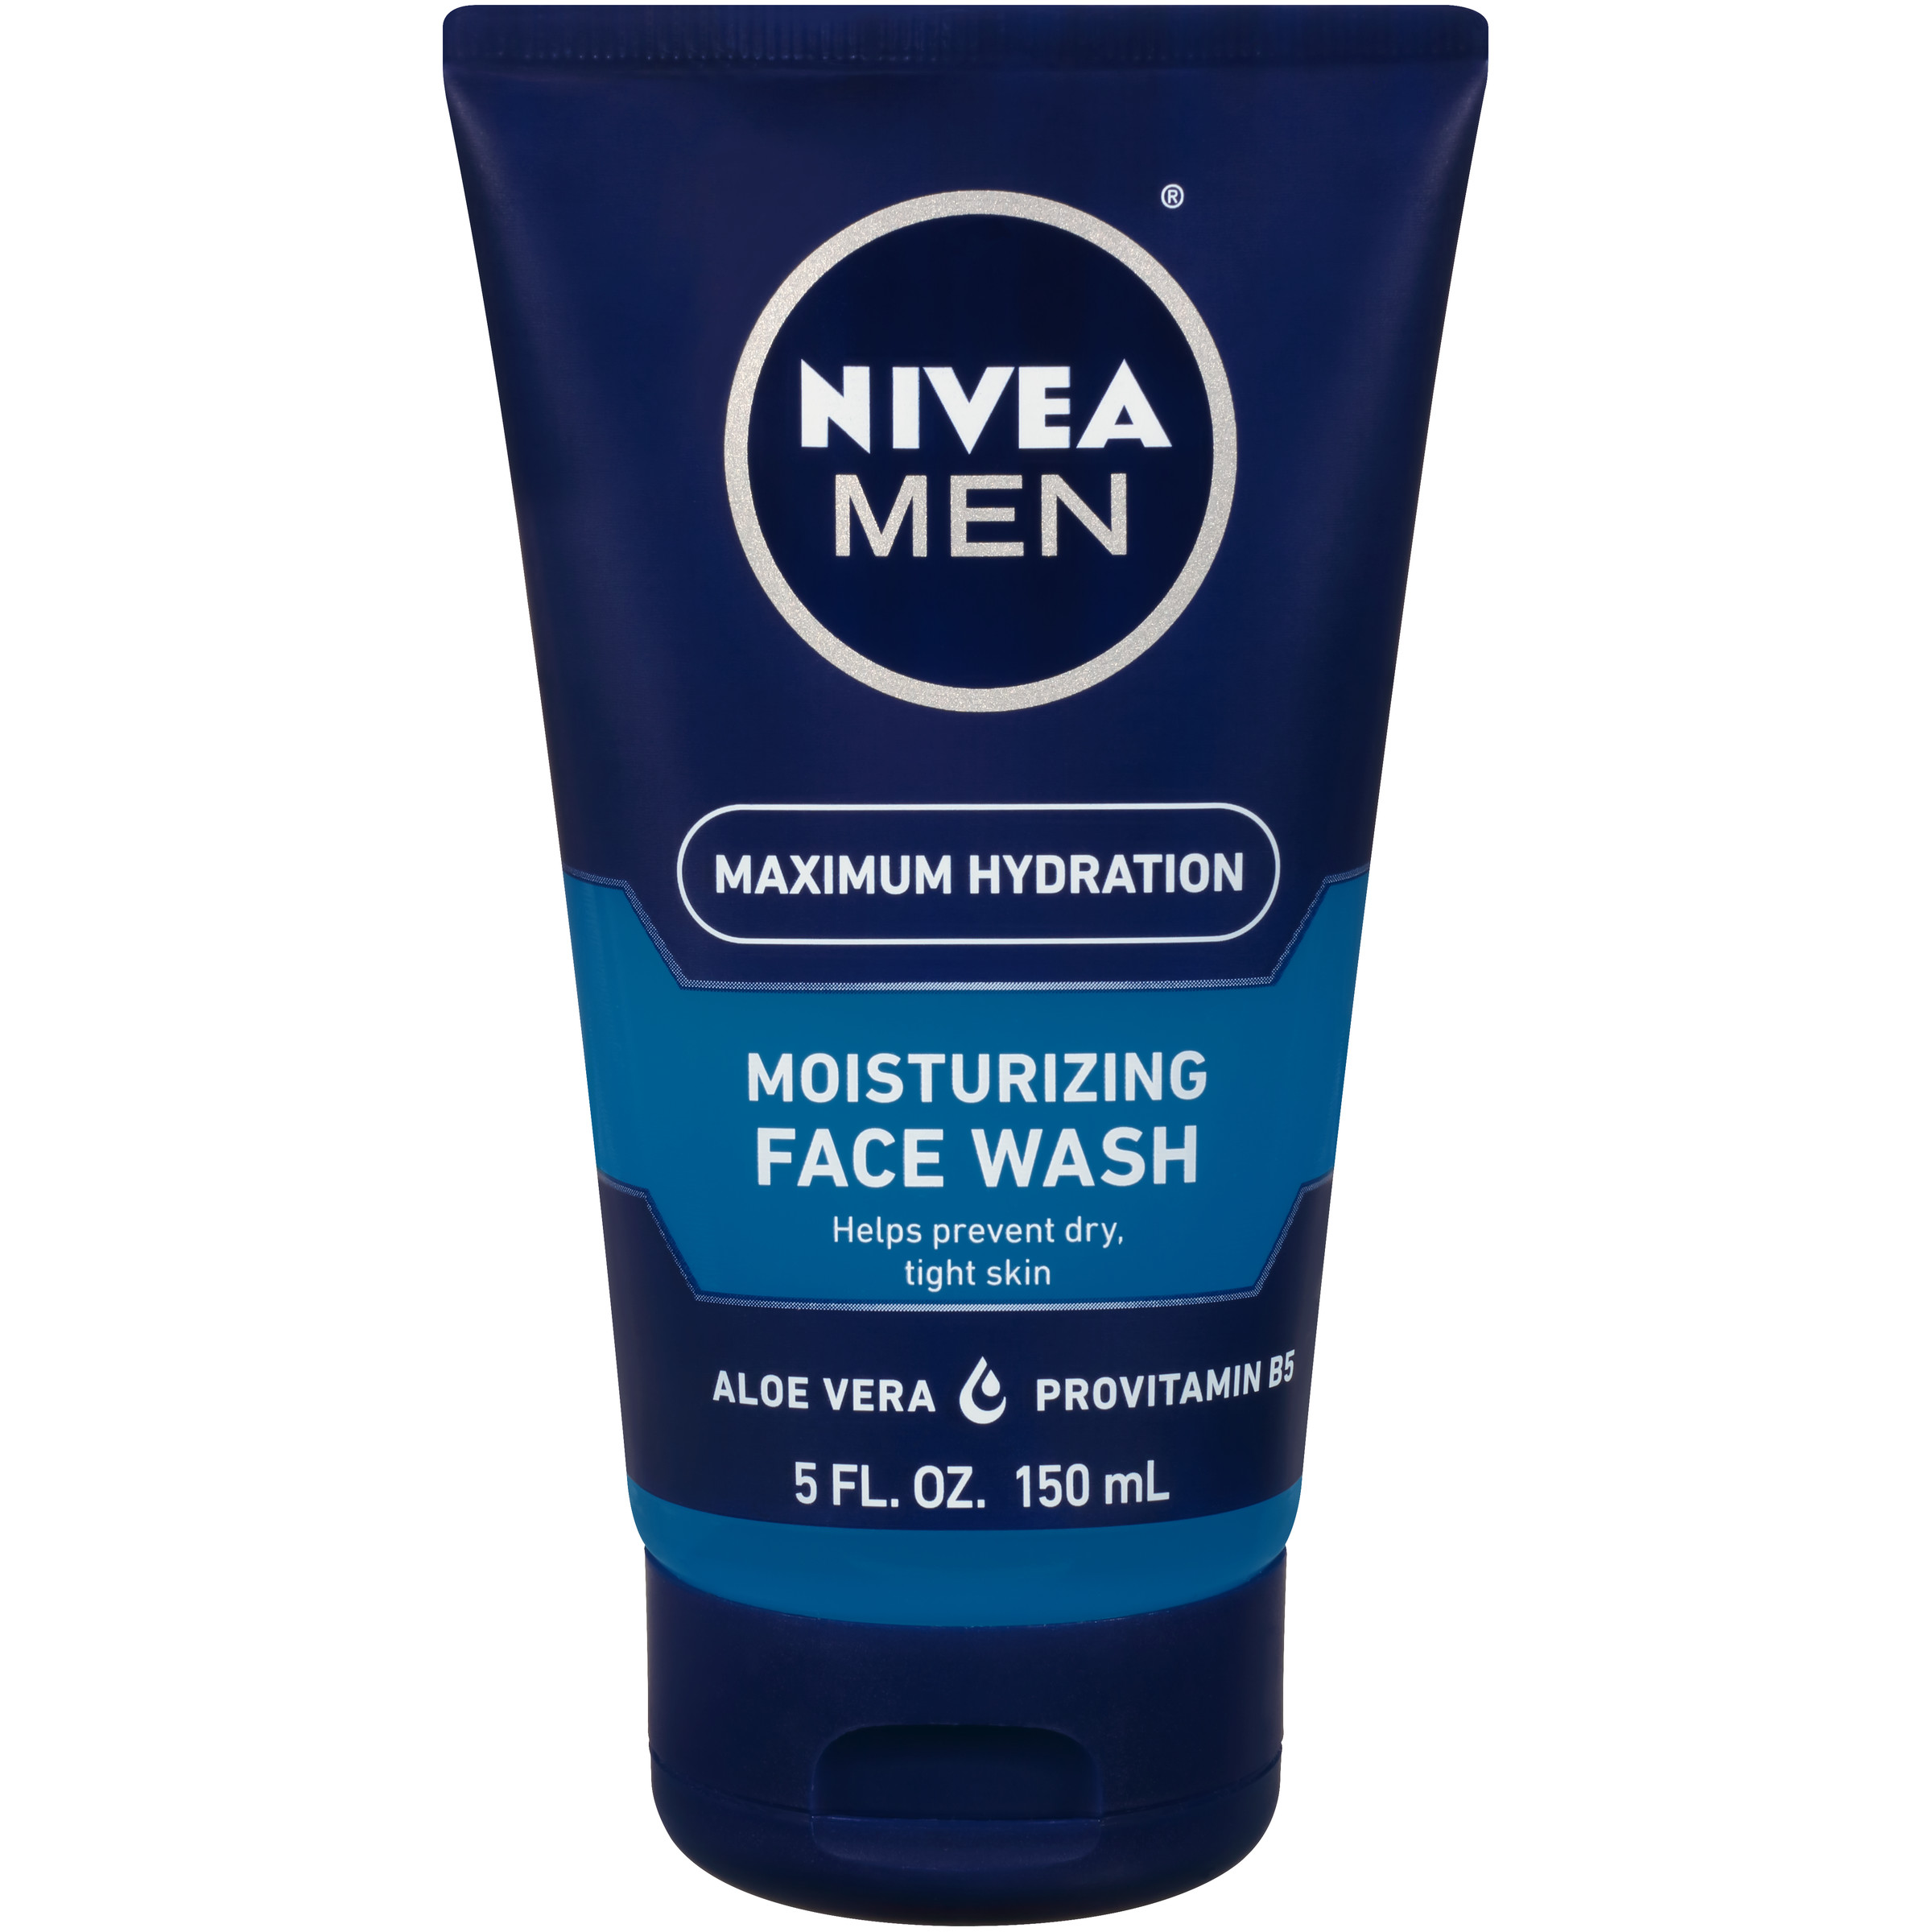 NIVEA Men Maximum Hydration Moisturizing Face Wash 5 fl. oz. - Walmart.com